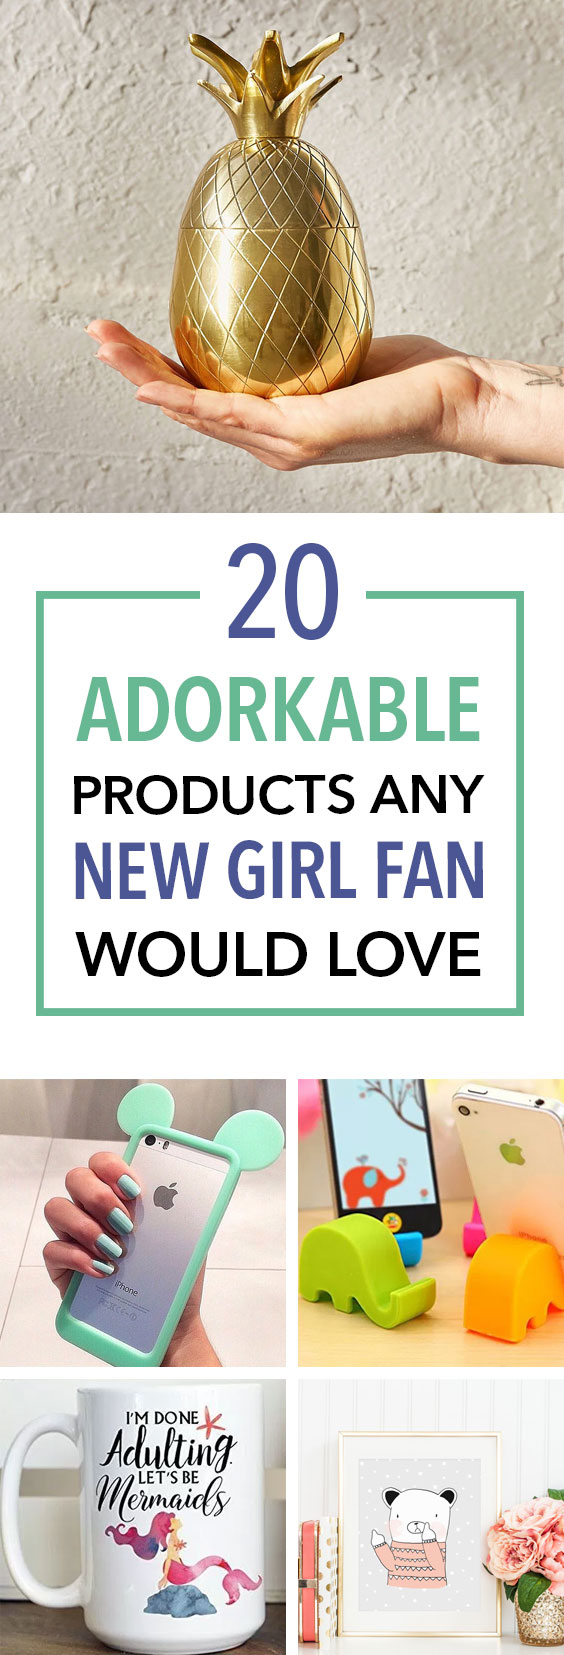 These adorable products are perfect gifts for New Girl fans!